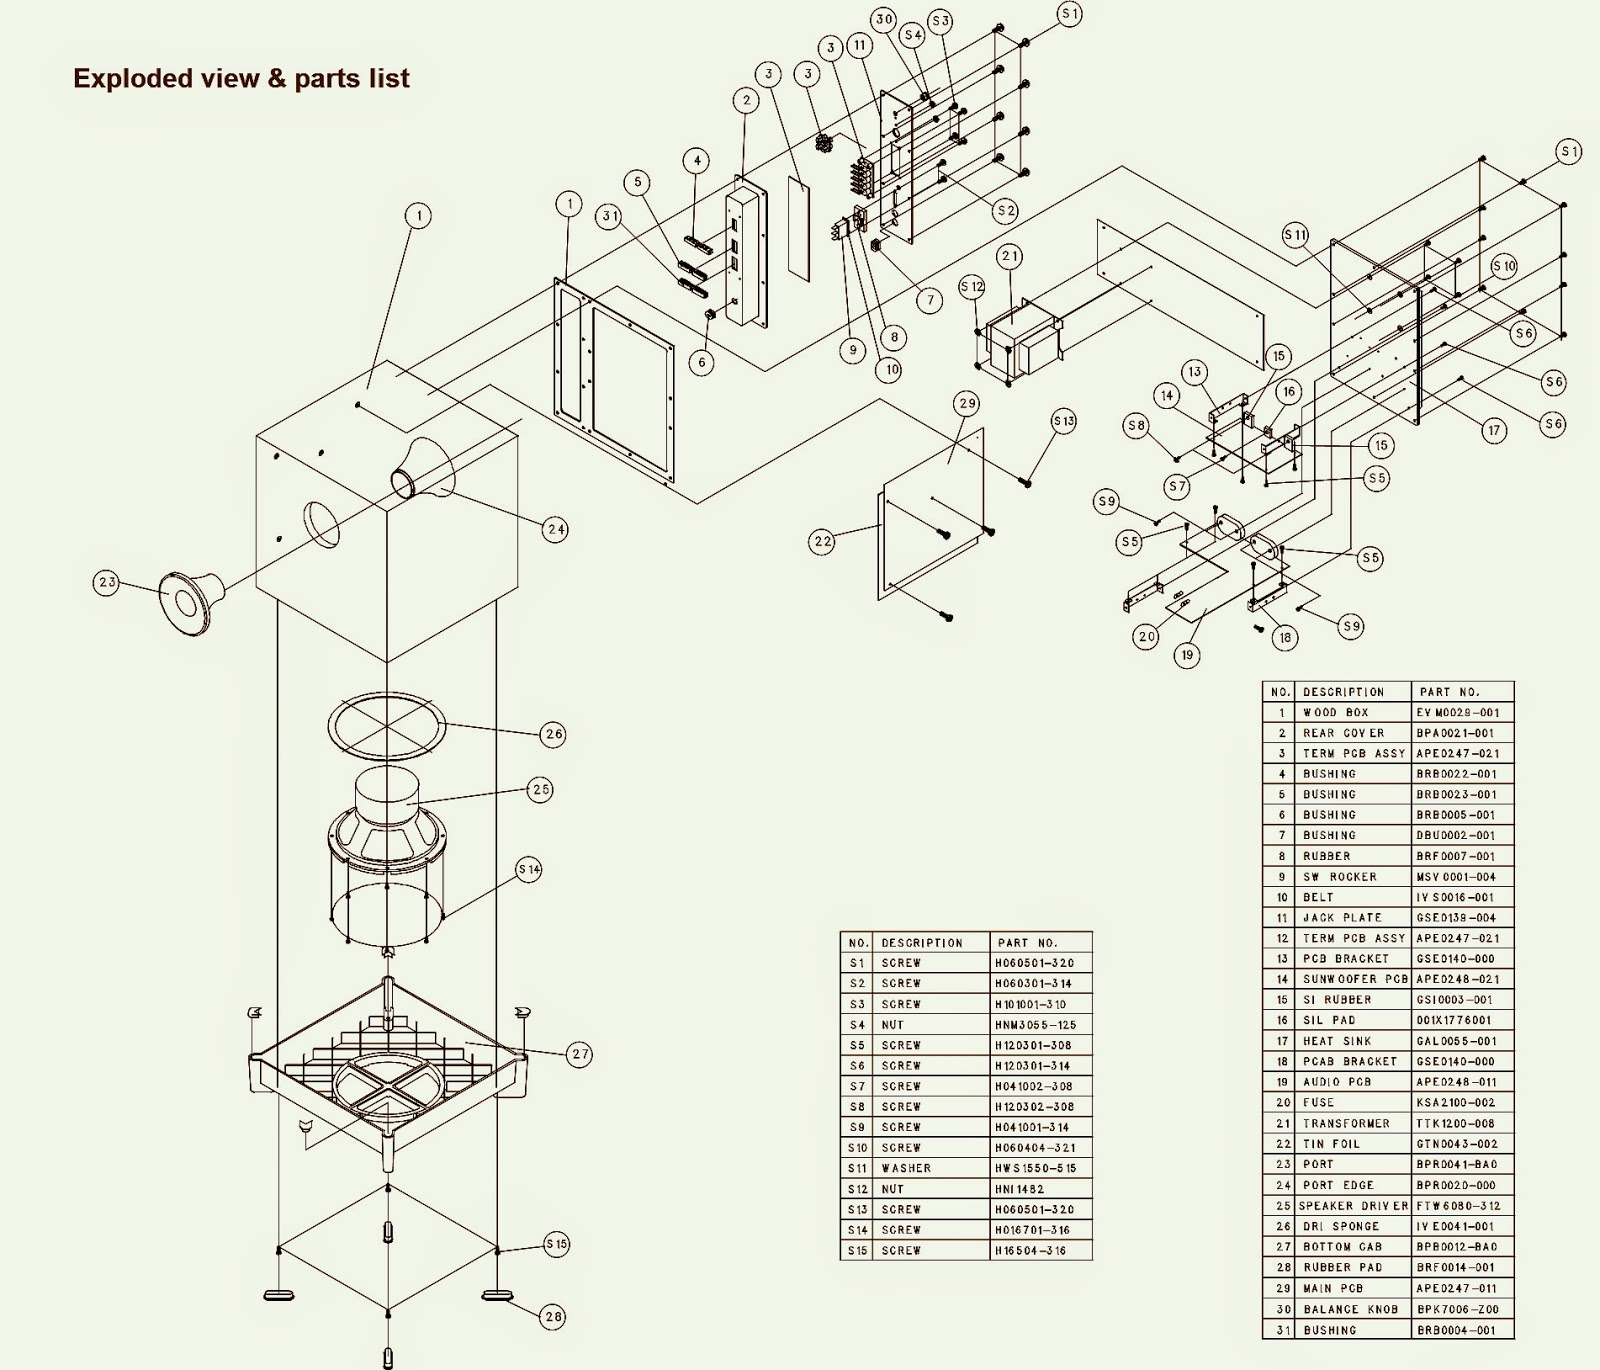 Jbl Sub350 Schematic Diagram Exploded View Parts